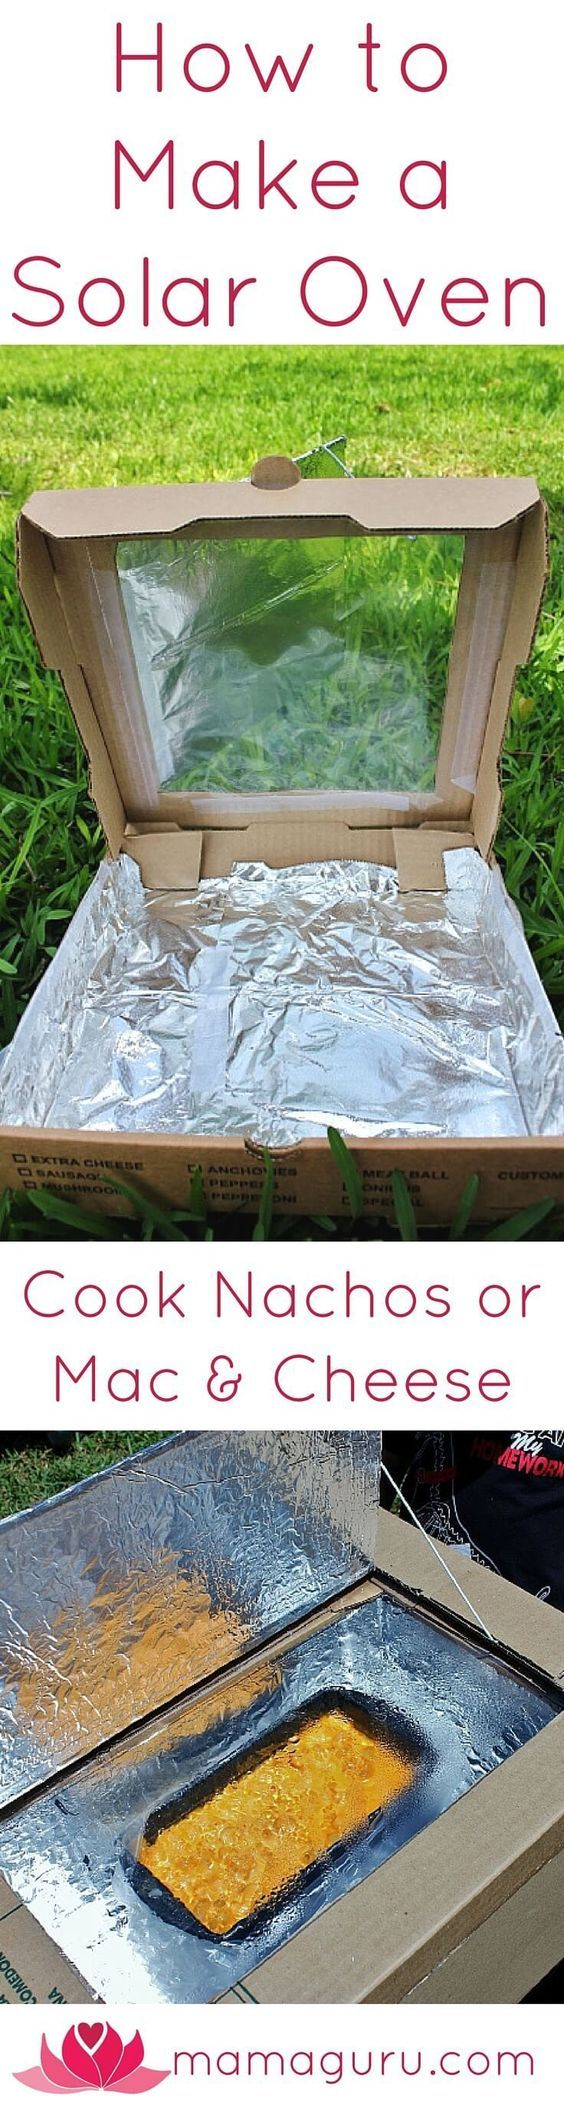 Best 25 materials science ideas on pinterest catapult for How to build a solar oven for kids